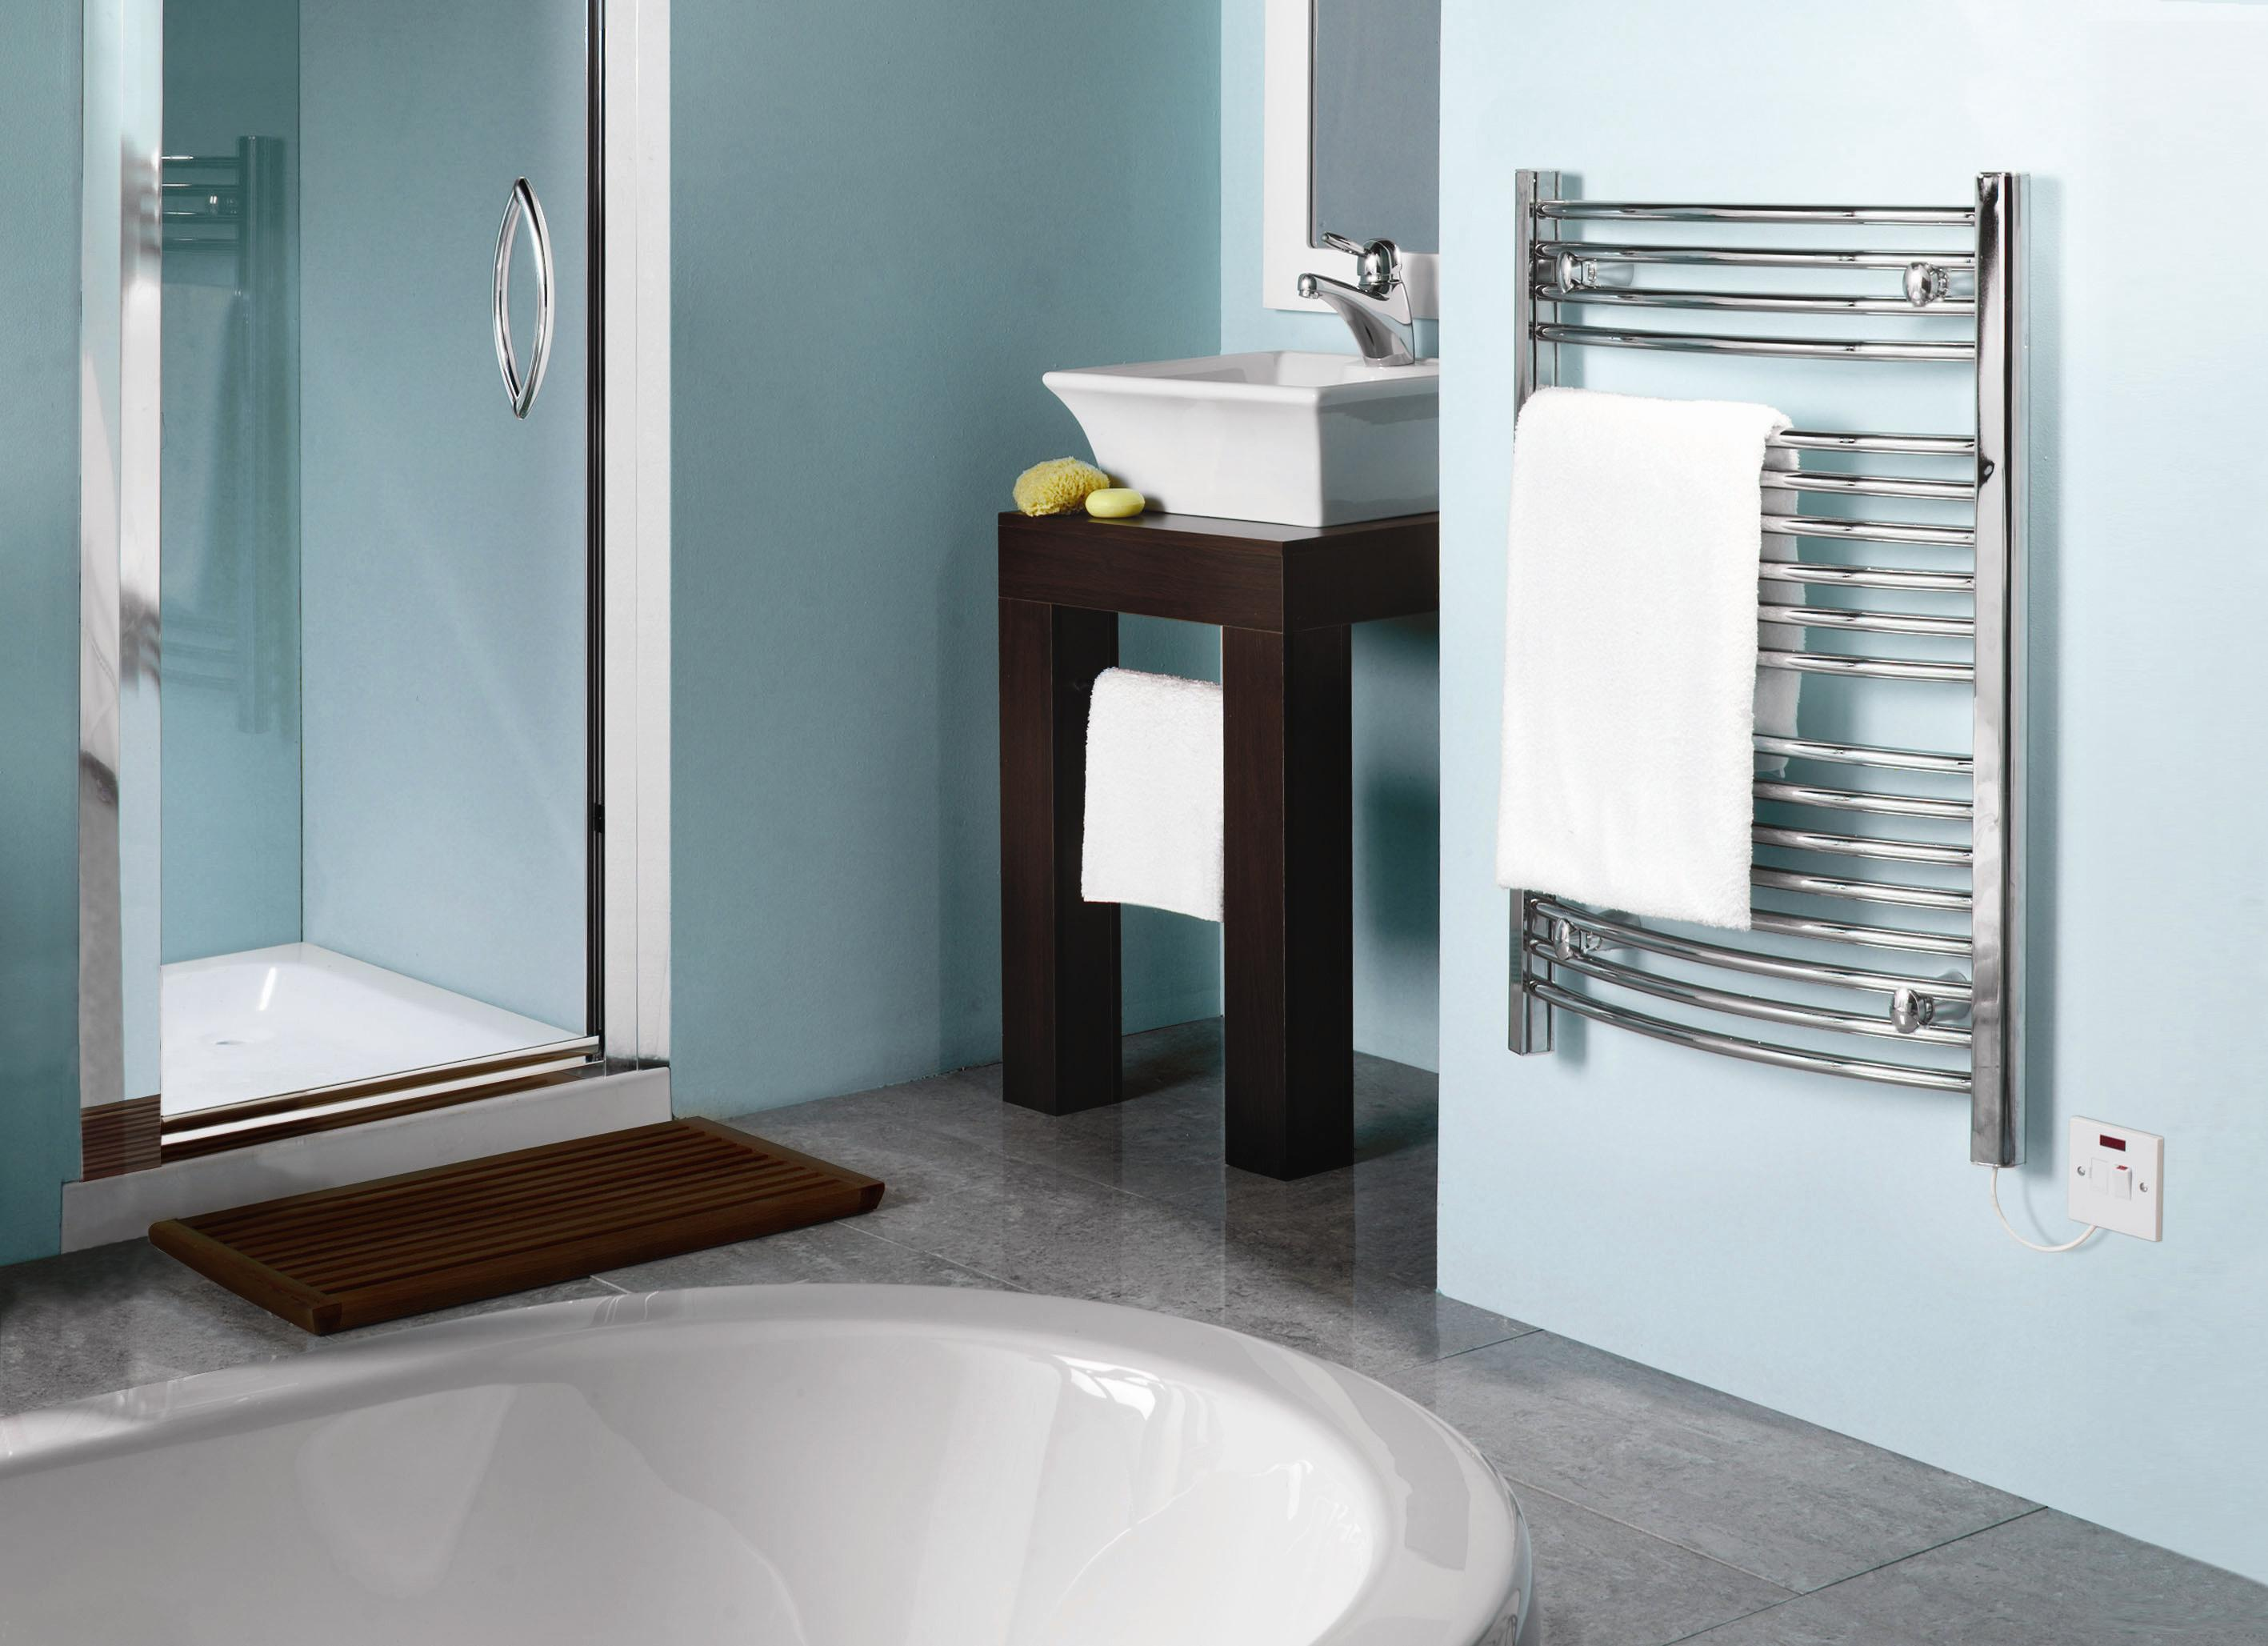 Bathroom Electric Heaters The Best Electric Heating For Your Home